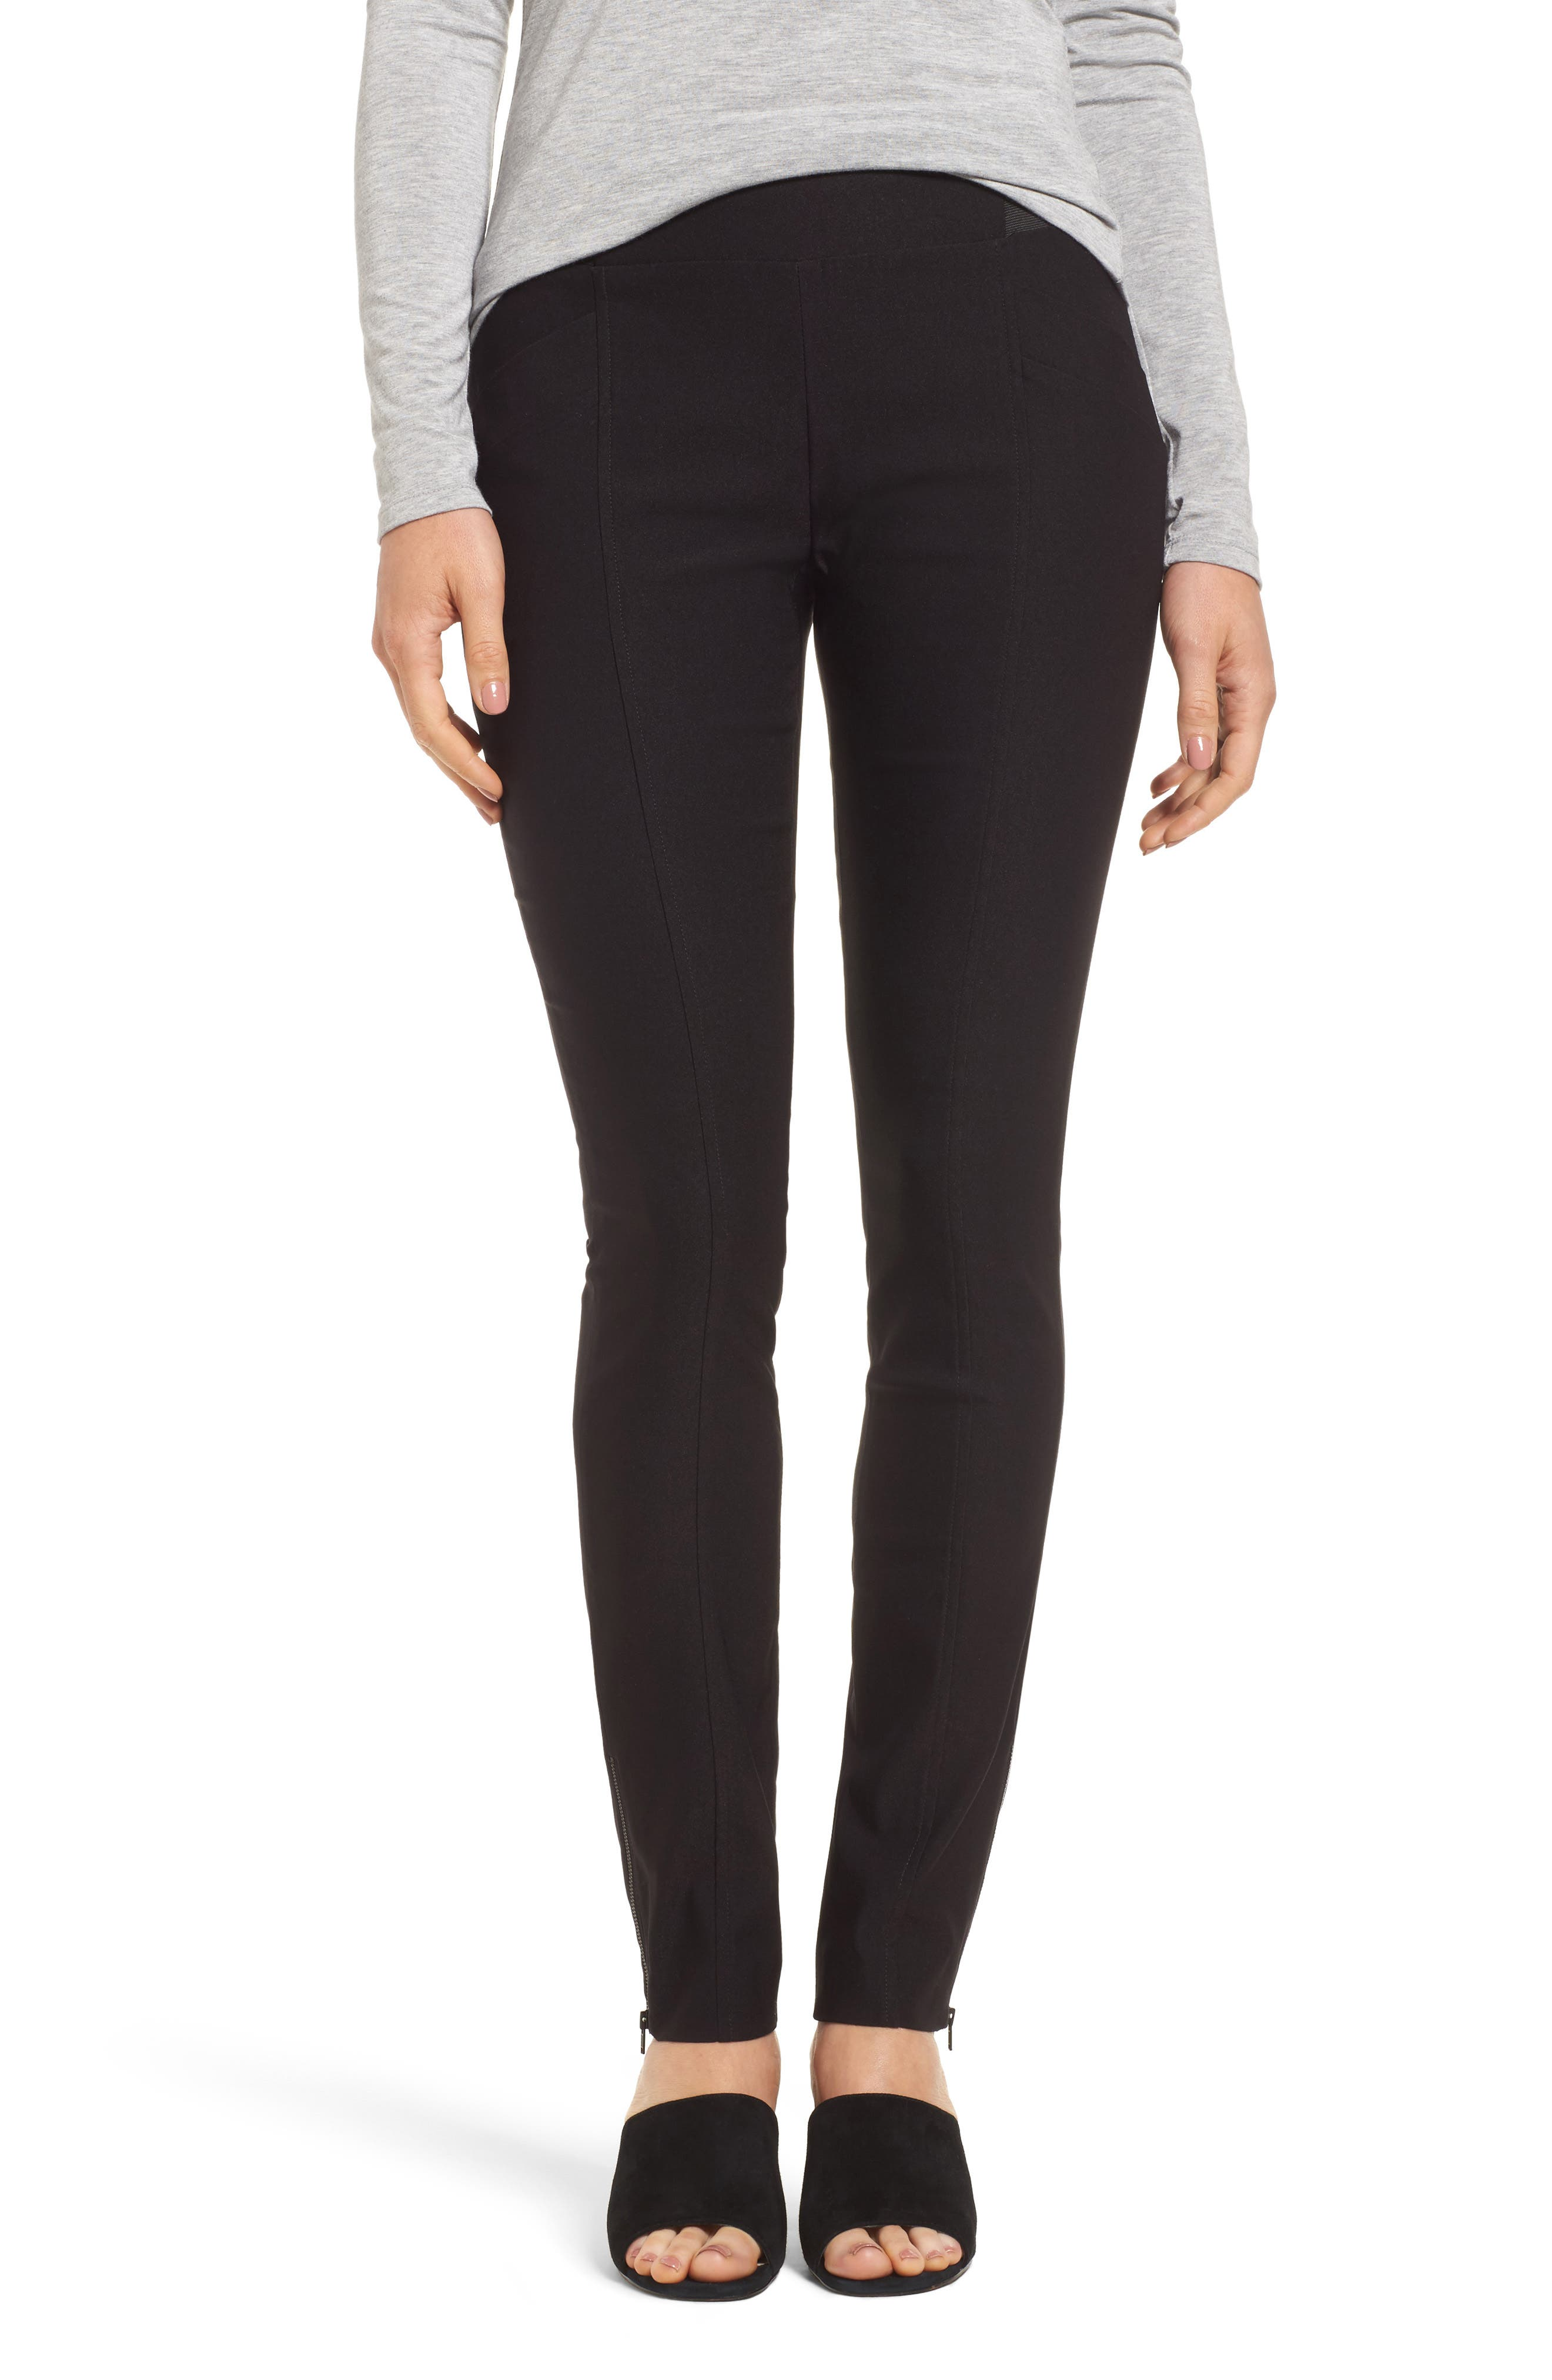 Zip Ankle Wonder Stretch Pants,                         Main,                         color, Black Onyx